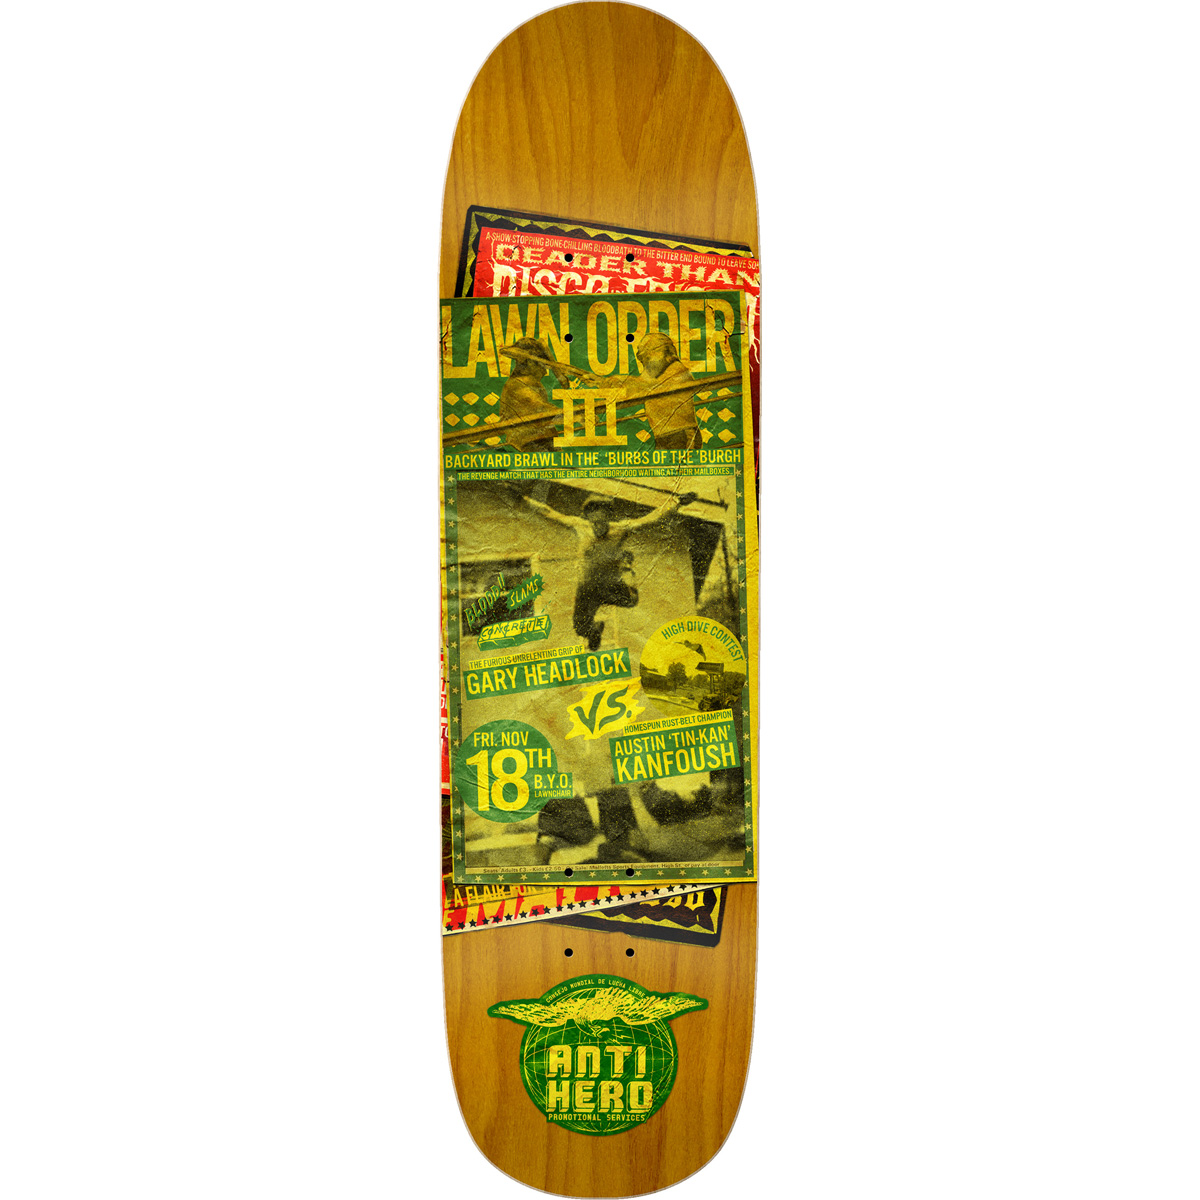 AH DECK FRIDAY NGHT KFSH 8.55 - Click to enlarge